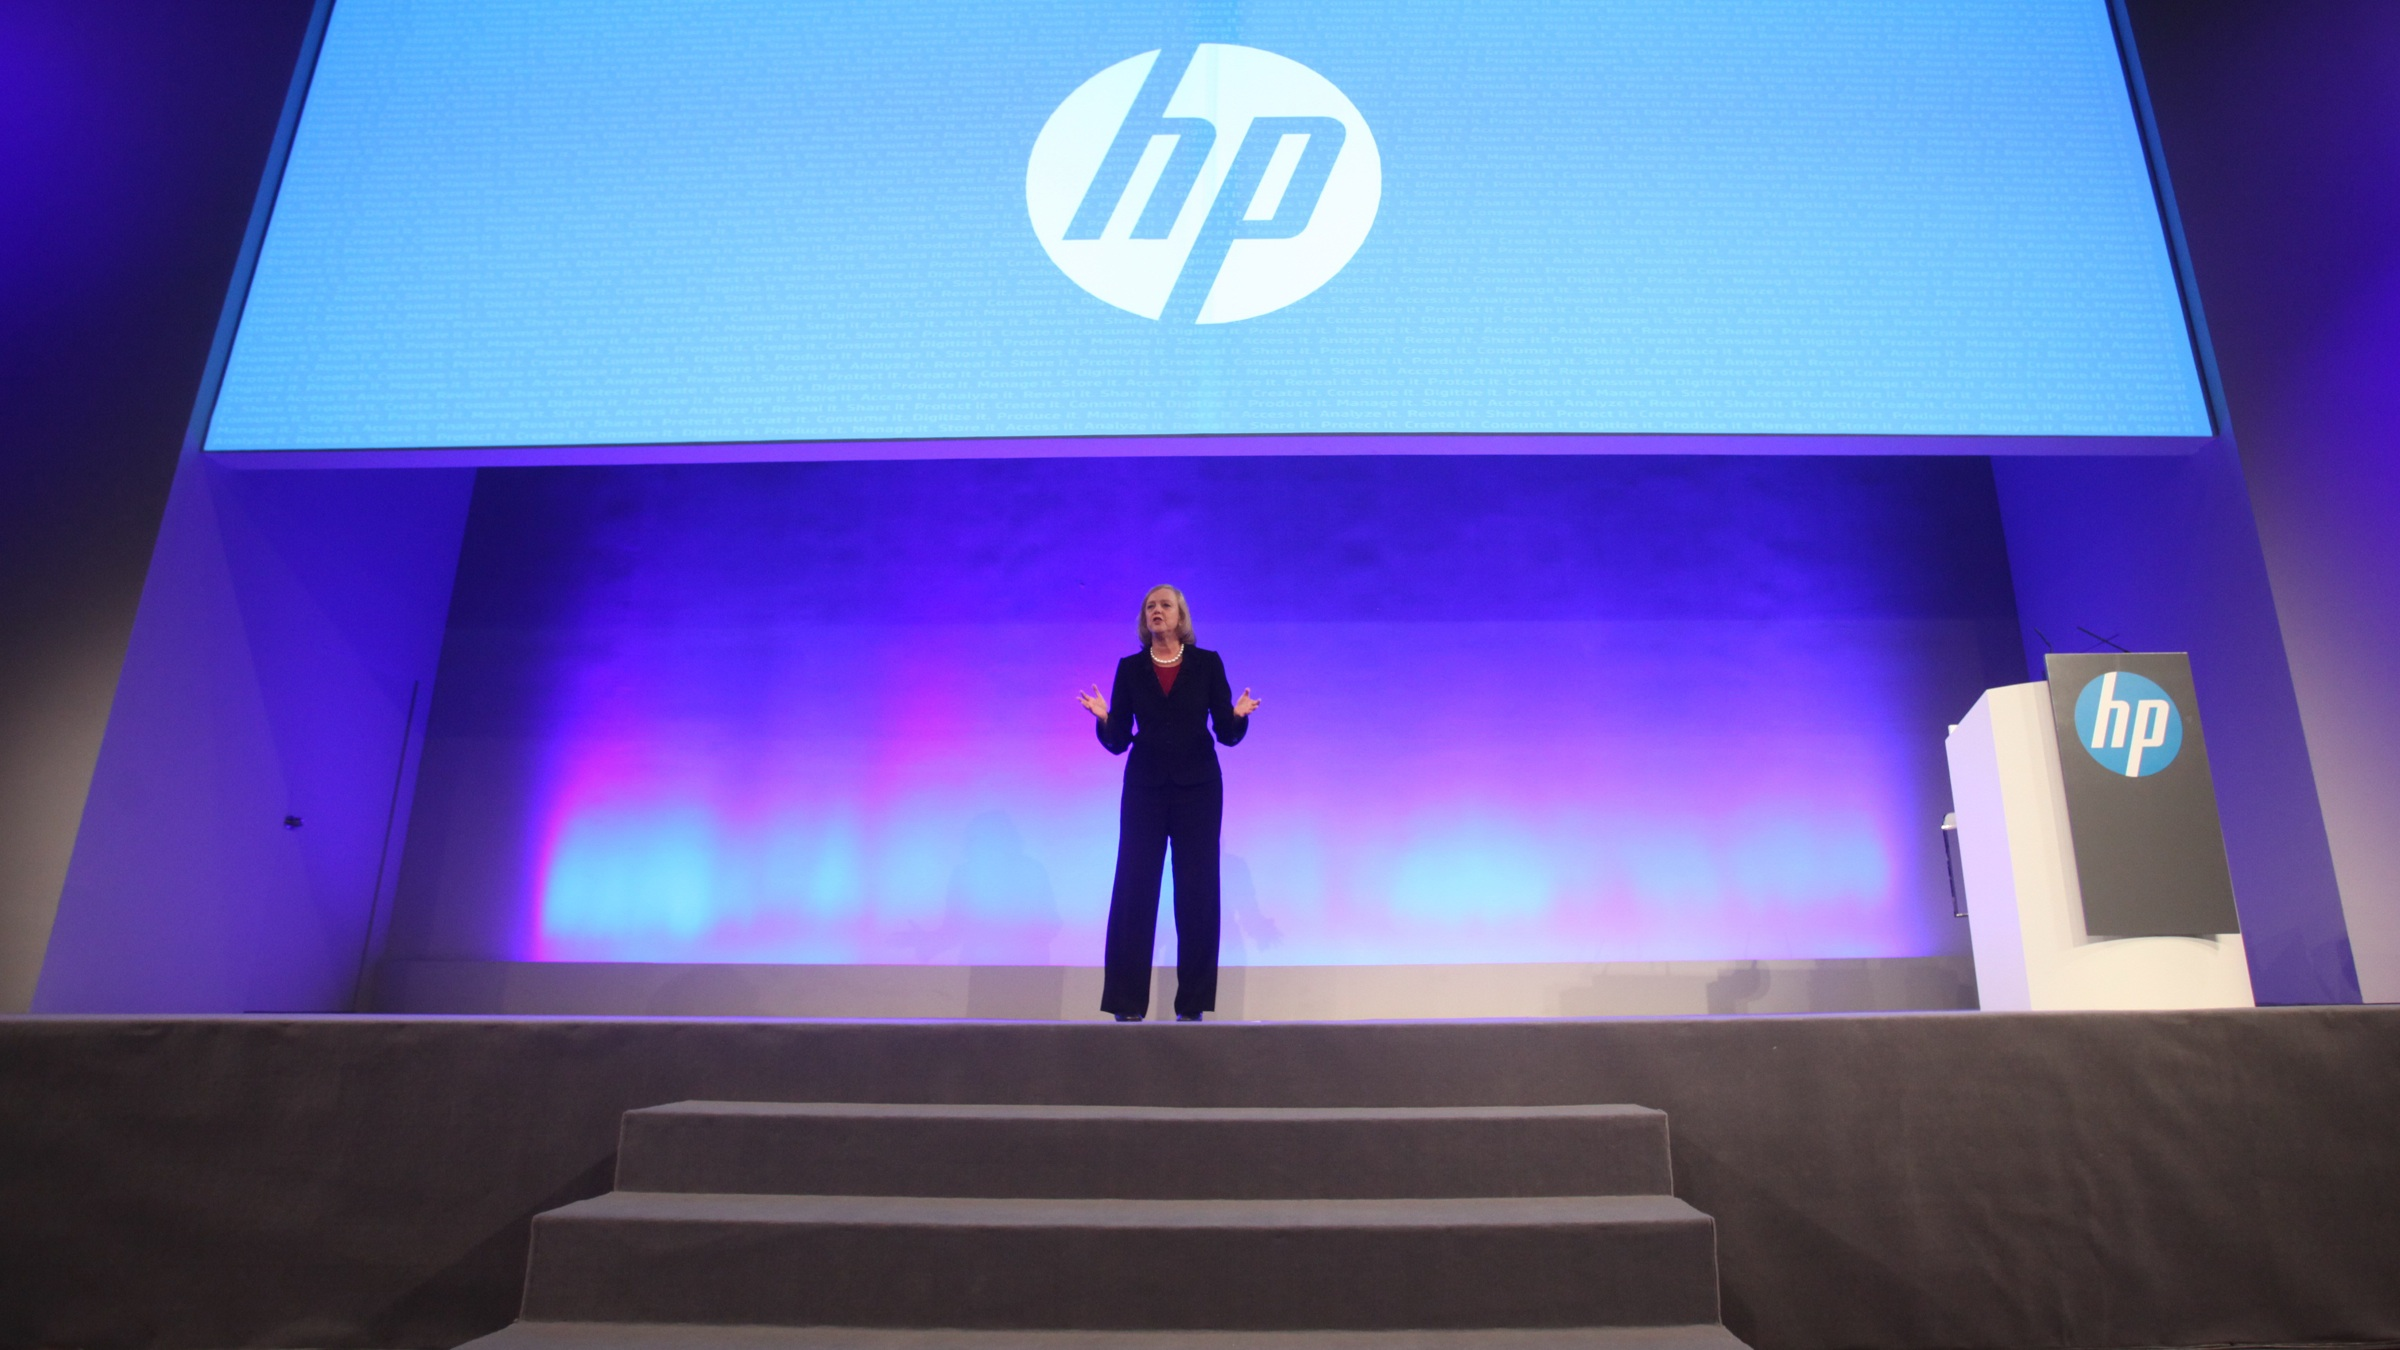 HP (Hewlett-Packard) CEO Meg Whitman delivers a speech during the HP World Tour in Beijing, China, 25 June 2013.  HP CEO Meg Whitman stressed her companys future viability at an event in Beijing on Tuesday (25 June 2013) as HP tried to win Chinese business customers. Believe me, HP is here to stay, Whitman said in a keynote speech at the HP World Tour in Beijing. We have come a long way since I joined Hewlett-Packard 20 months ago. HP has made the rapidly growing Chinese market a strong international focus. Whitman and other HP officials took their case directly to Chinese businesses at the two-day event, which for businesses focused on storage, big data, cloud and printing.